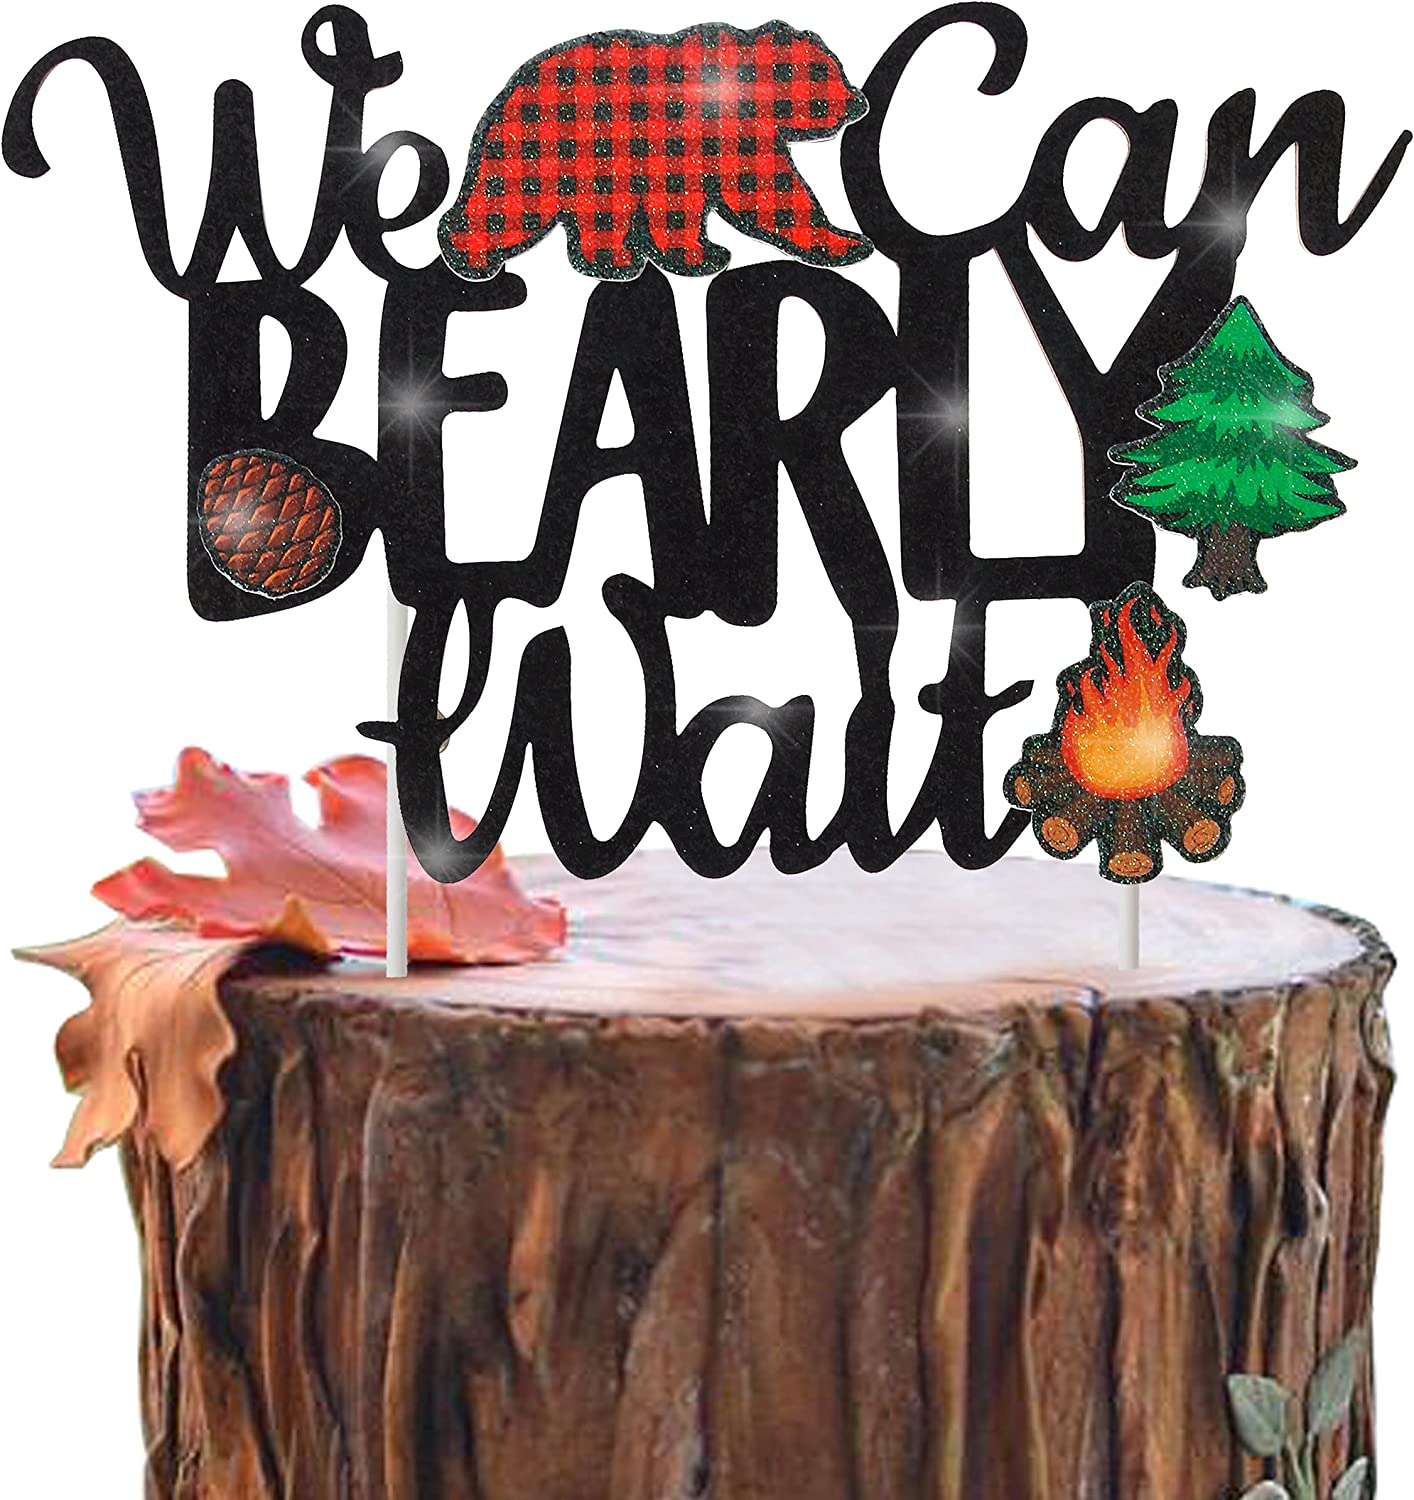 Lumberjack We Can Bearly excellence Wait Quantity limited Topper Shower Cake Baby